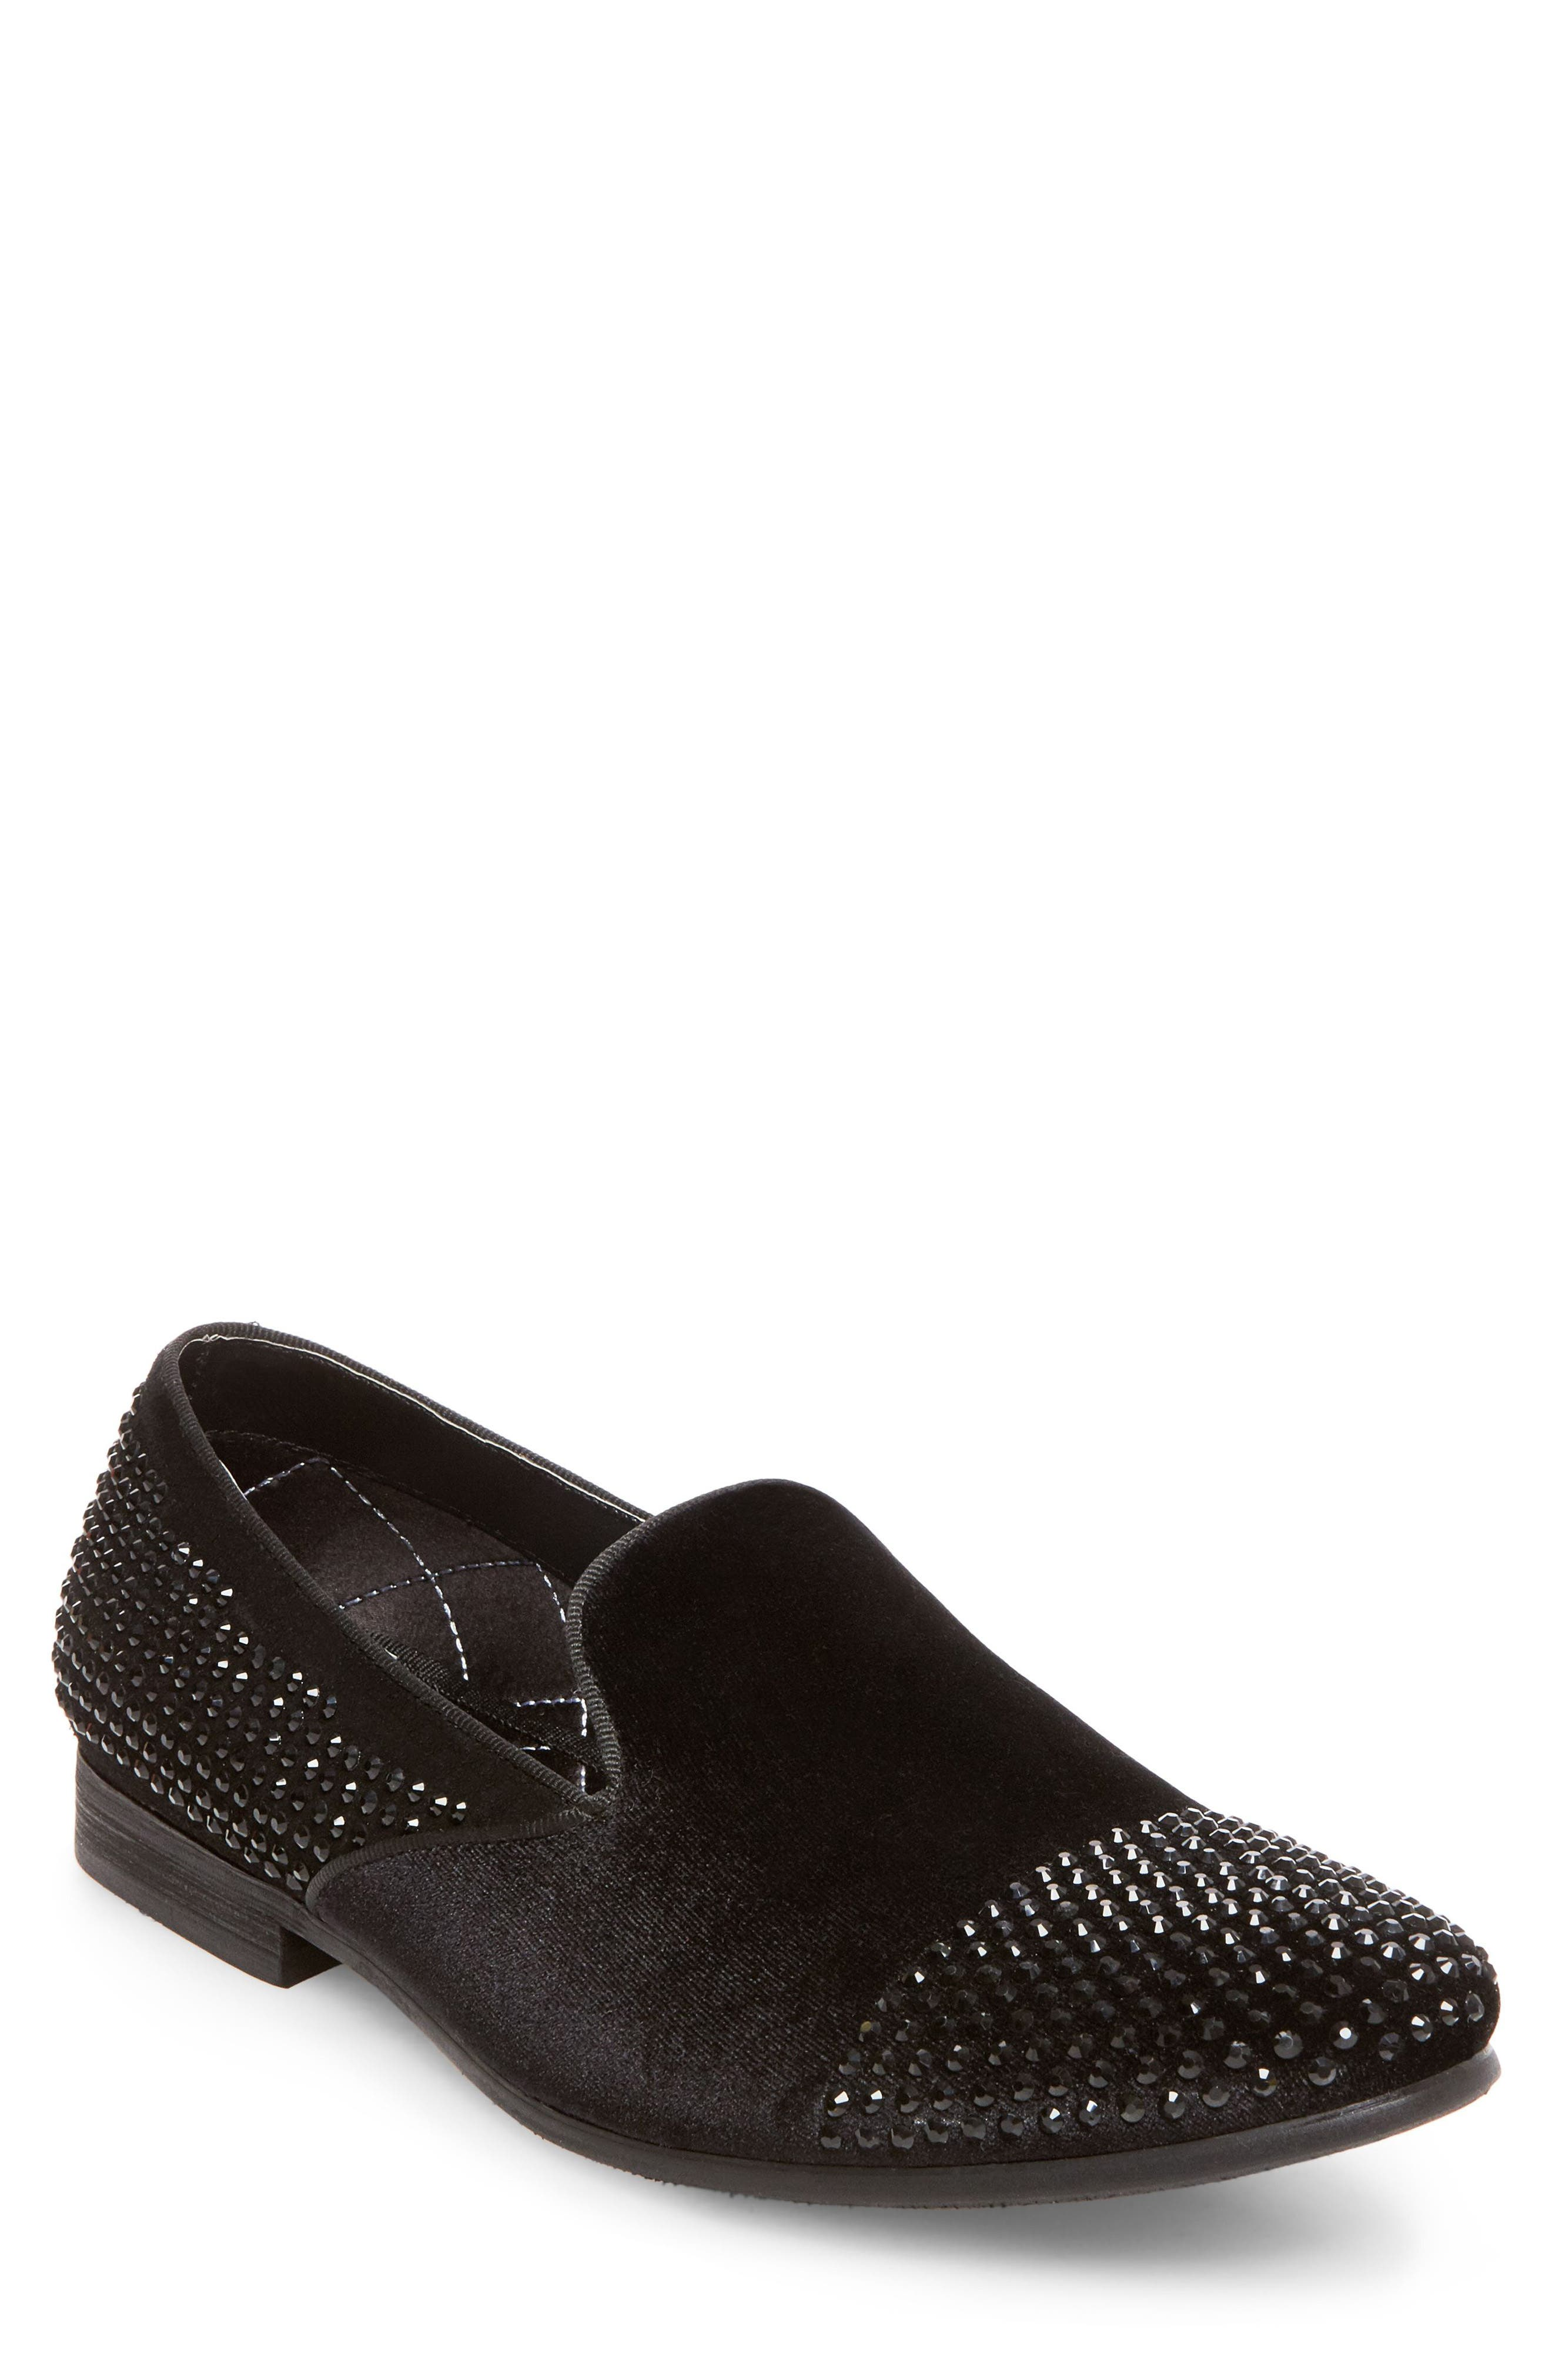 Clarity Loafer,                             Main thumbnail 1, color,                             Black Fabric